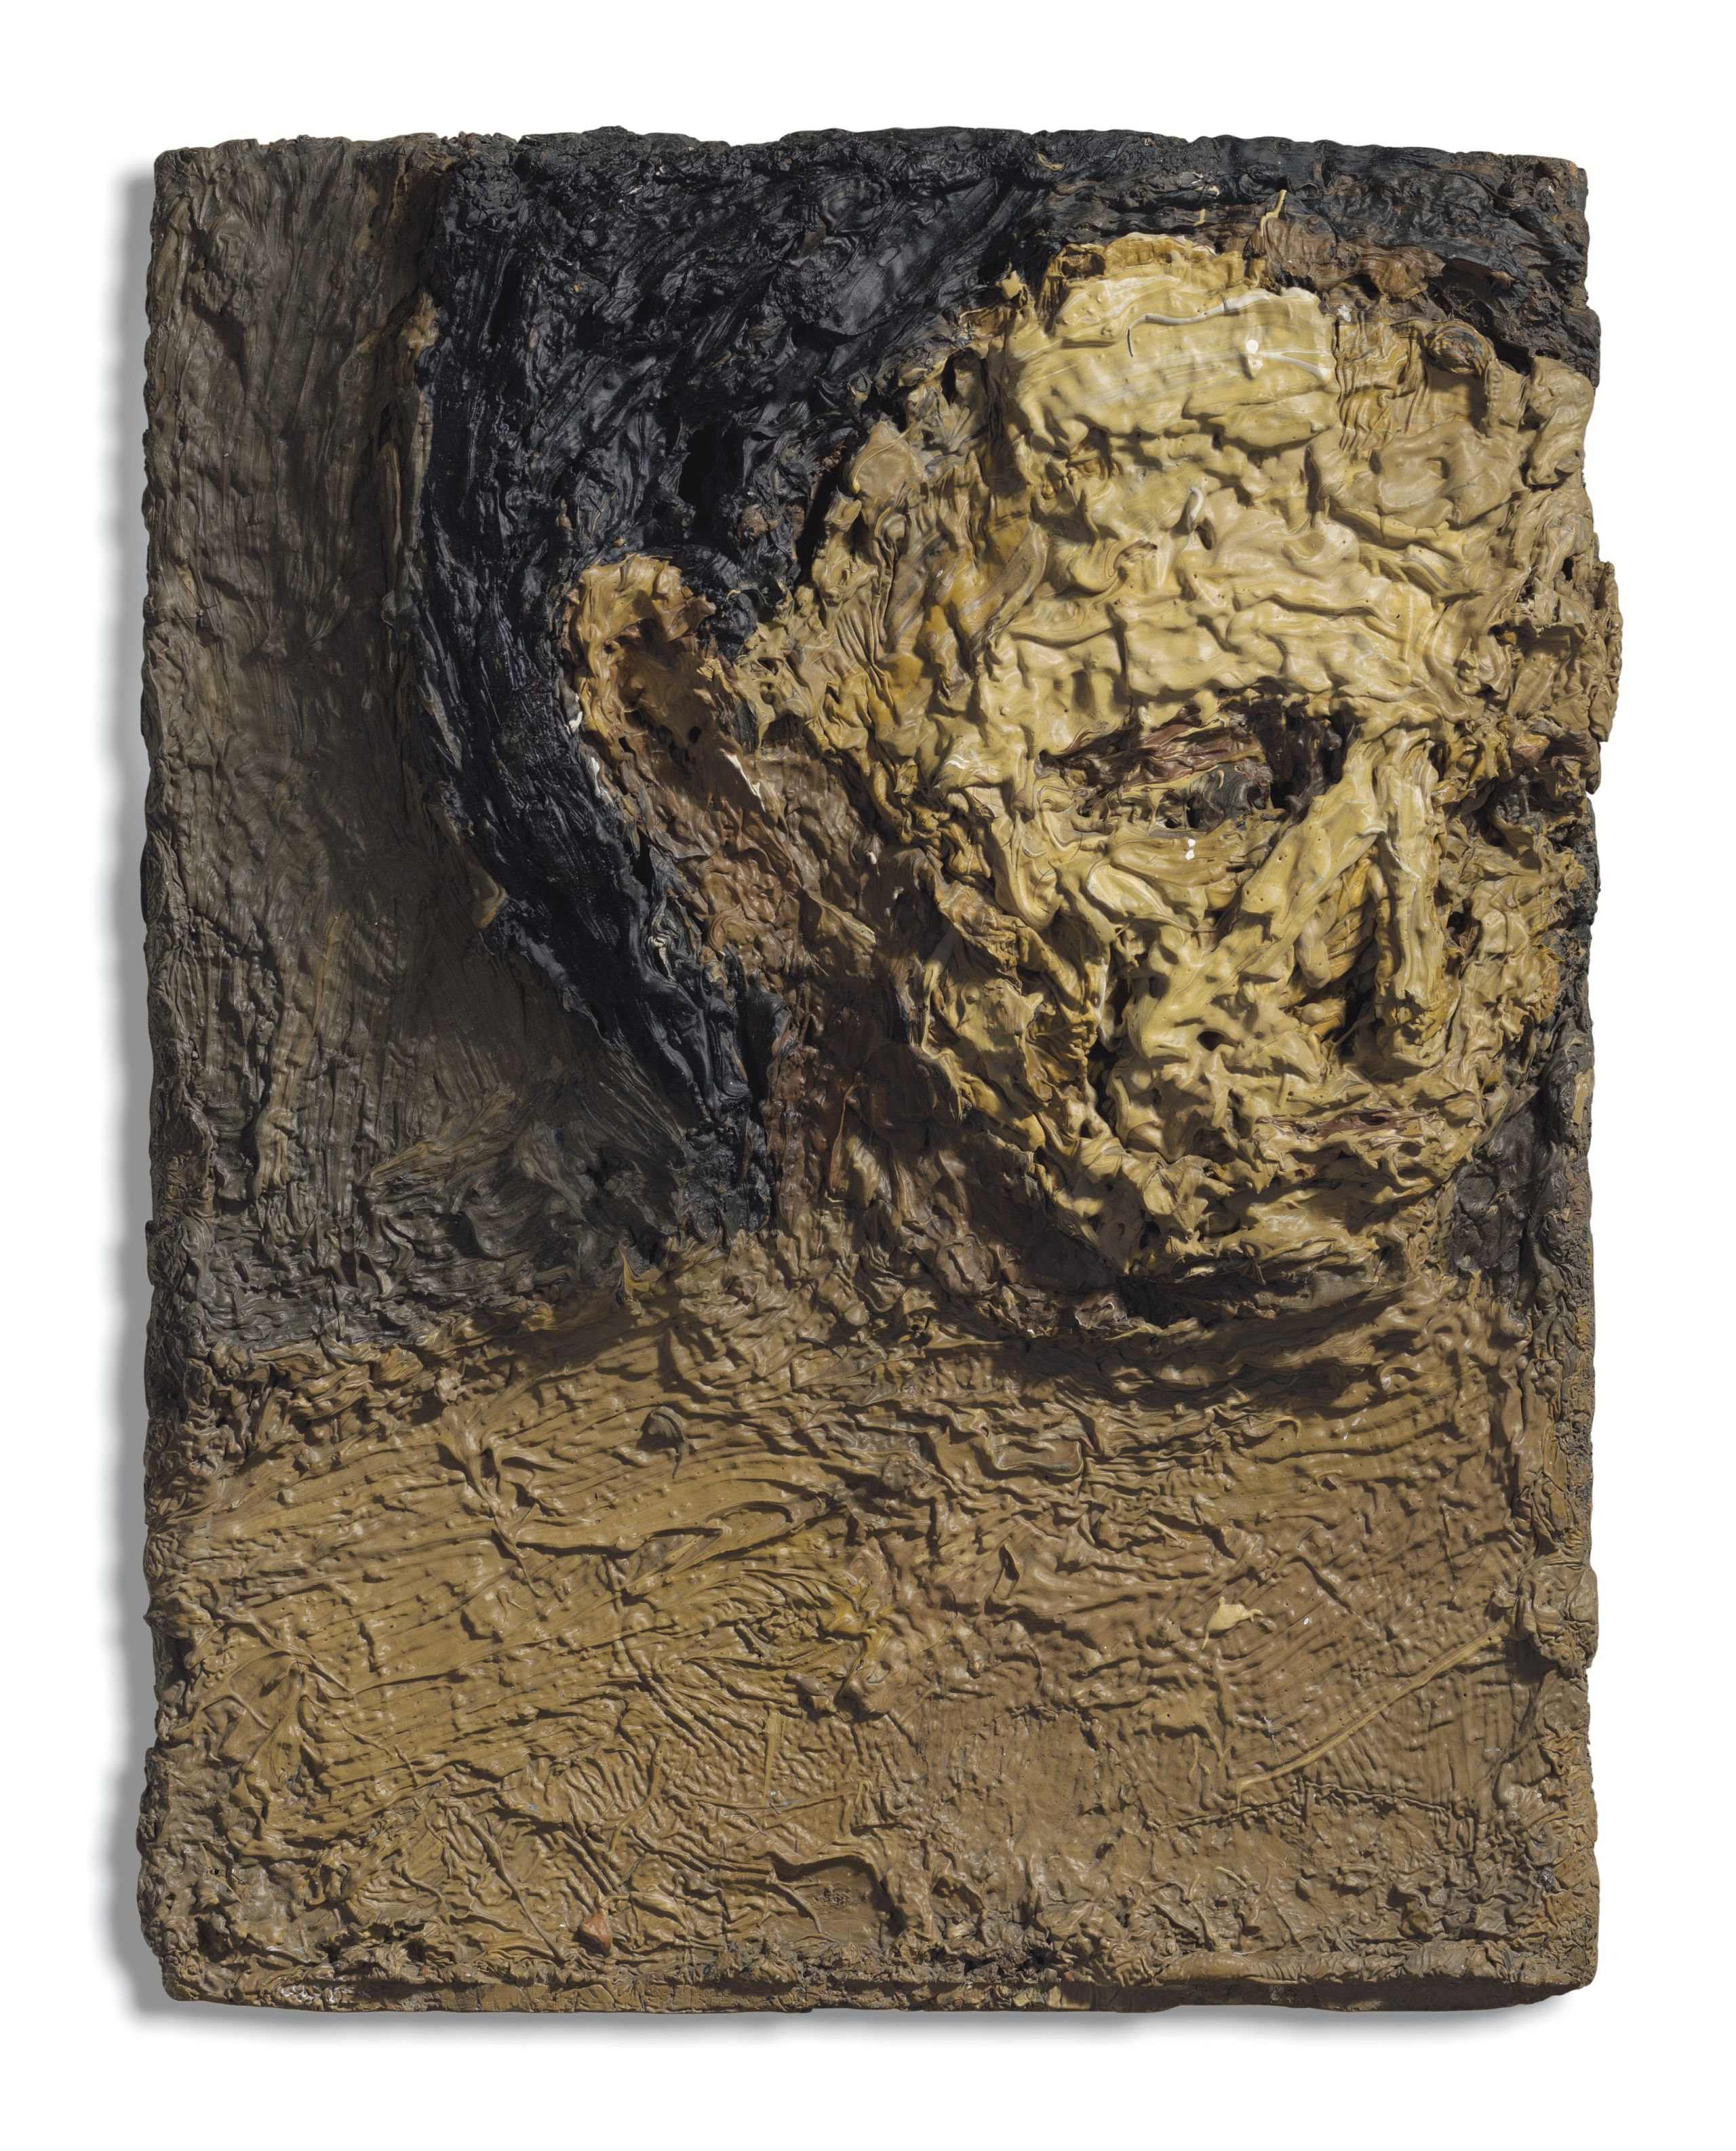 Frank Auerbach, Head of E.O.W., 1955. Oil on board. 15¾ x 12½ in (40 x 31.8 cm). Estimate: £800,000-1,200,000. Offered in The Jeremy Lancaster Collection on 1 October at Christie's in London